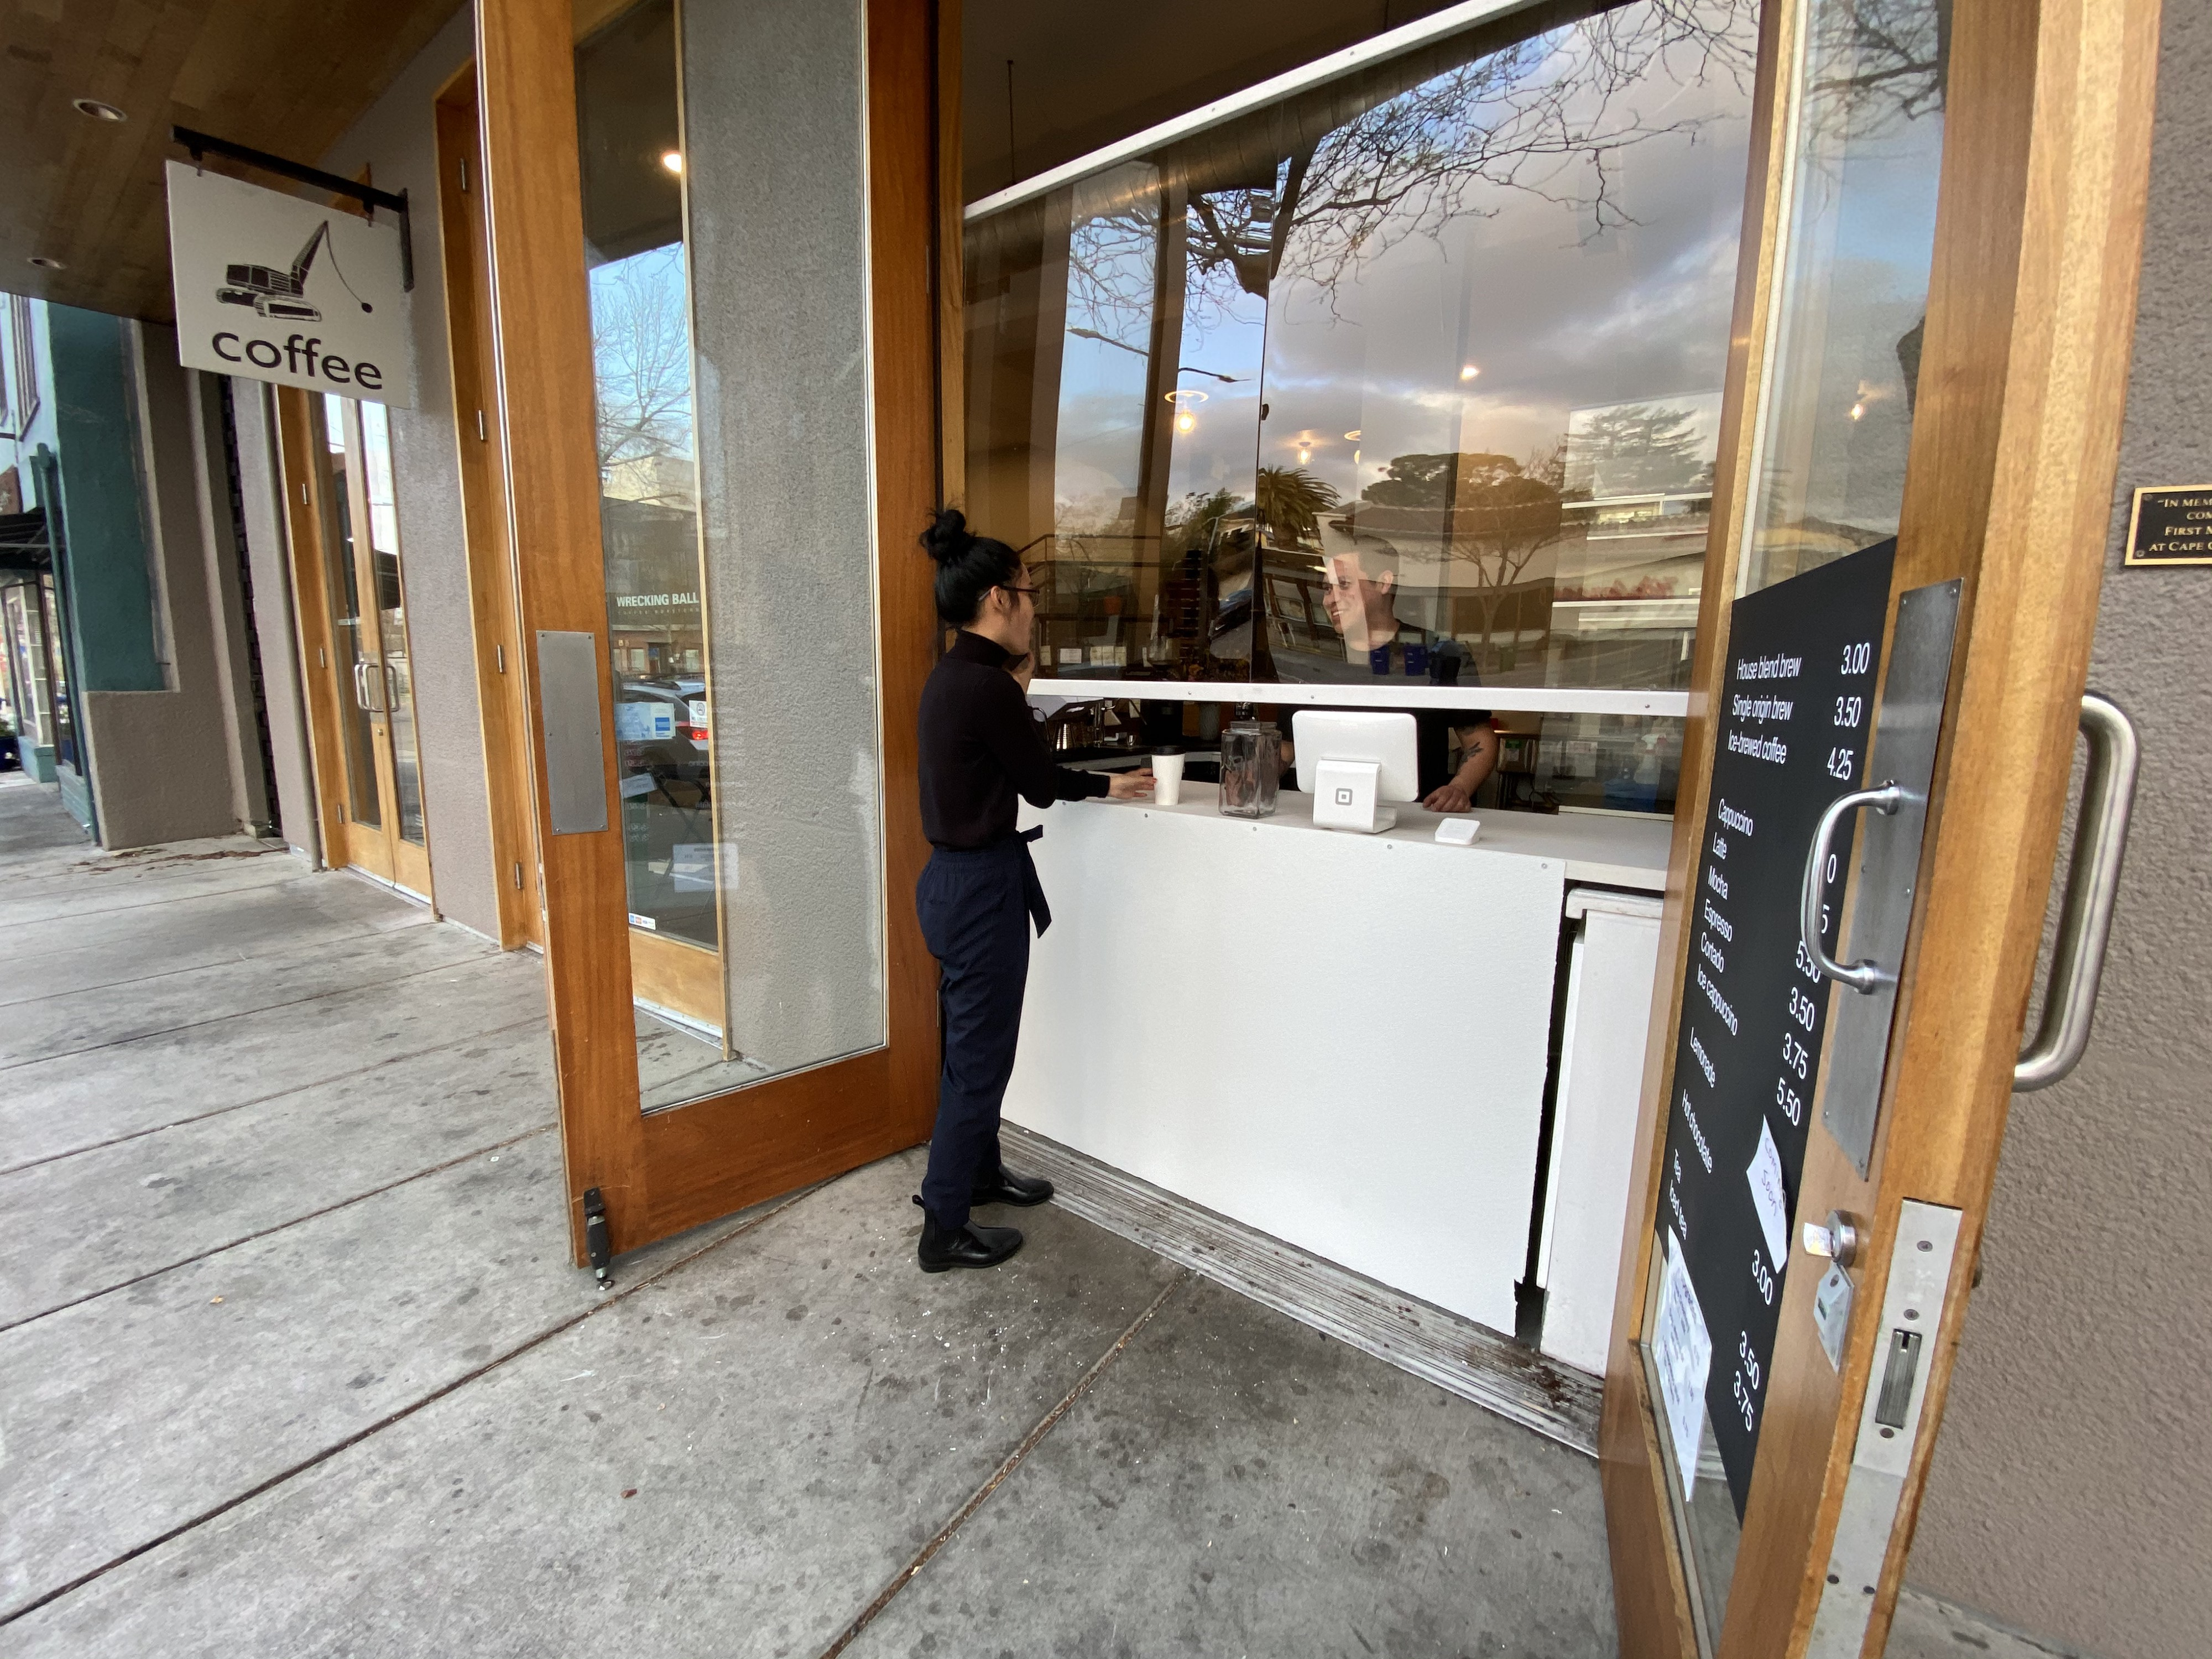 Open double-doors reveals a white counter and glass partition as a person is served coffee from a barista.